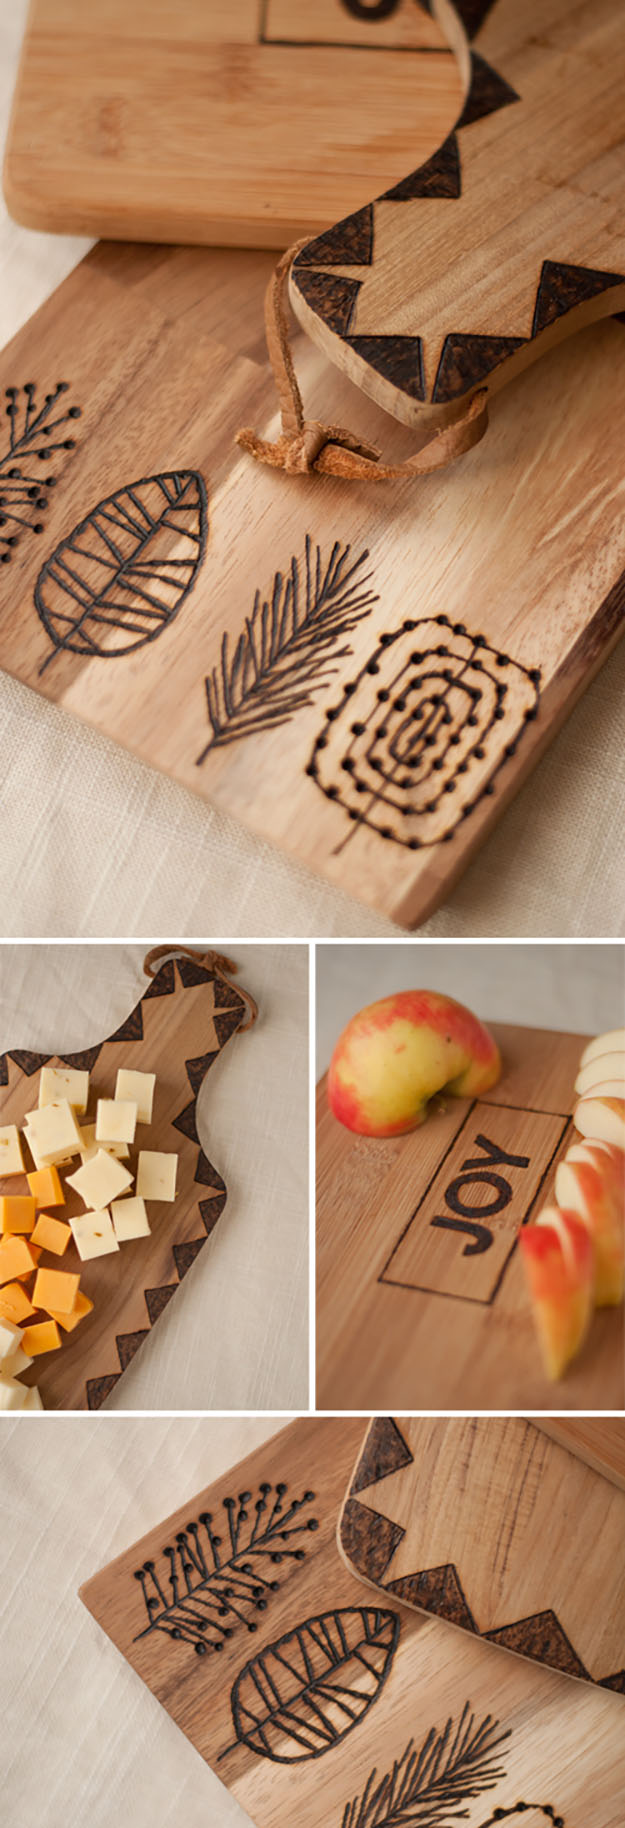 DIY Gifts For Friends U0026 Family | DIY Kitchen Ideas | Etched Wooden Cutting  Boards |